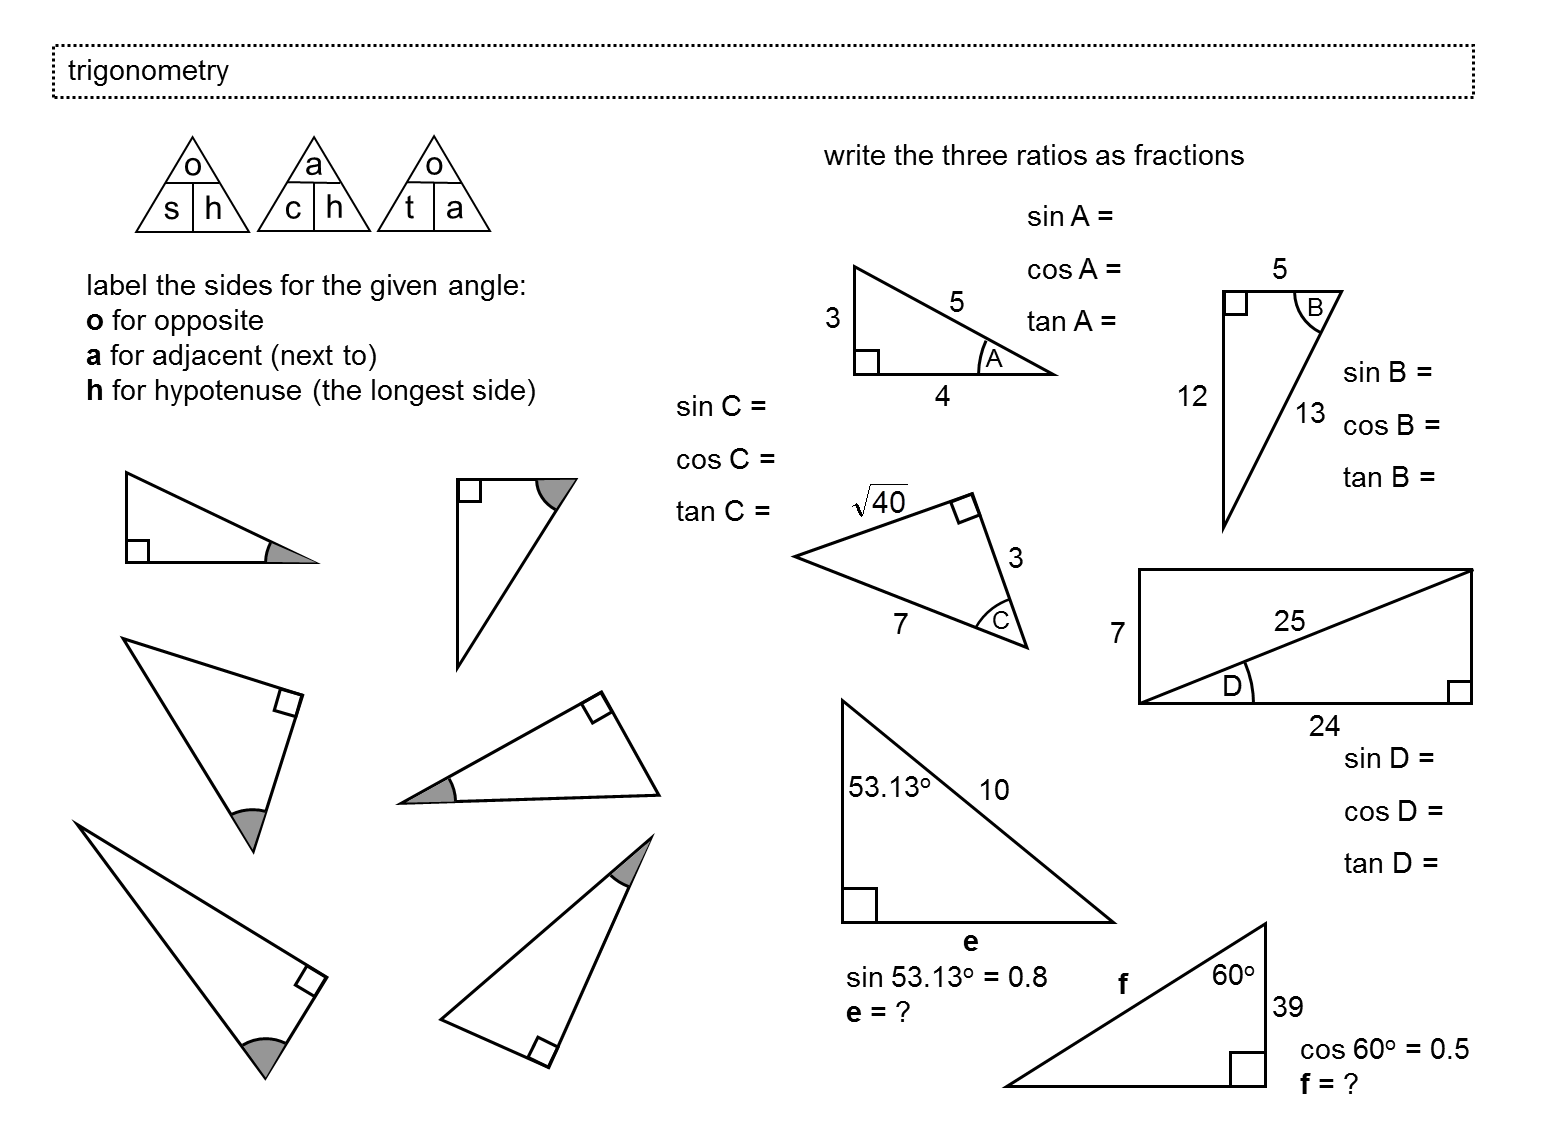 Trigonometry in RightAngled Triangles Miss Norledges Storeroom – Trig Ratio Worksheet